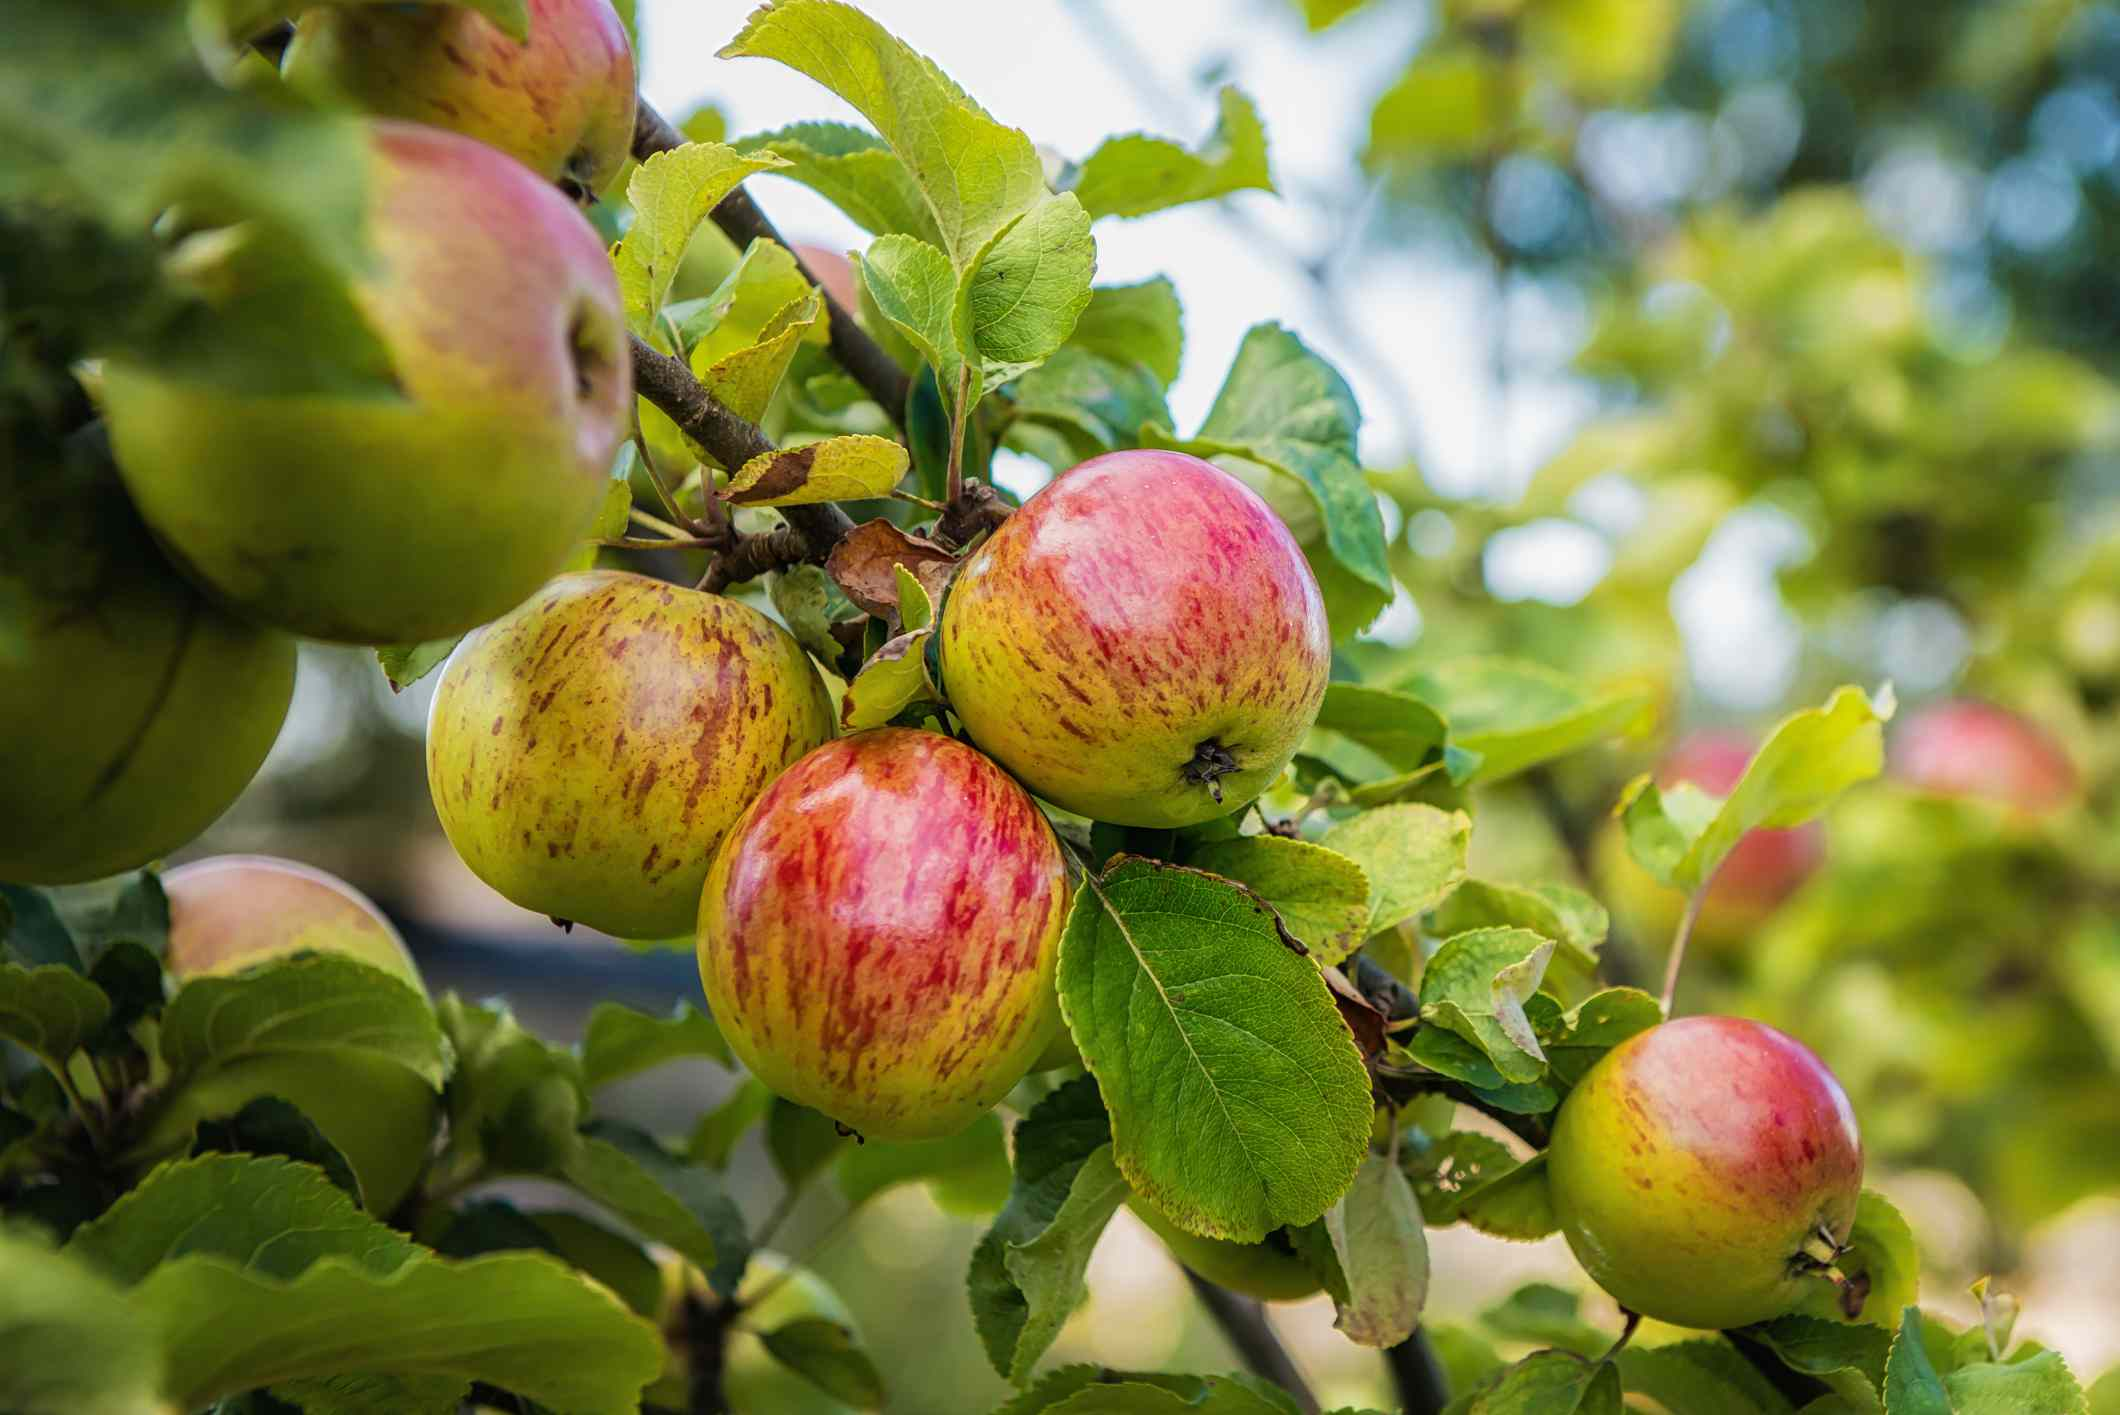 Close up of ripe apples hanging on a tree.